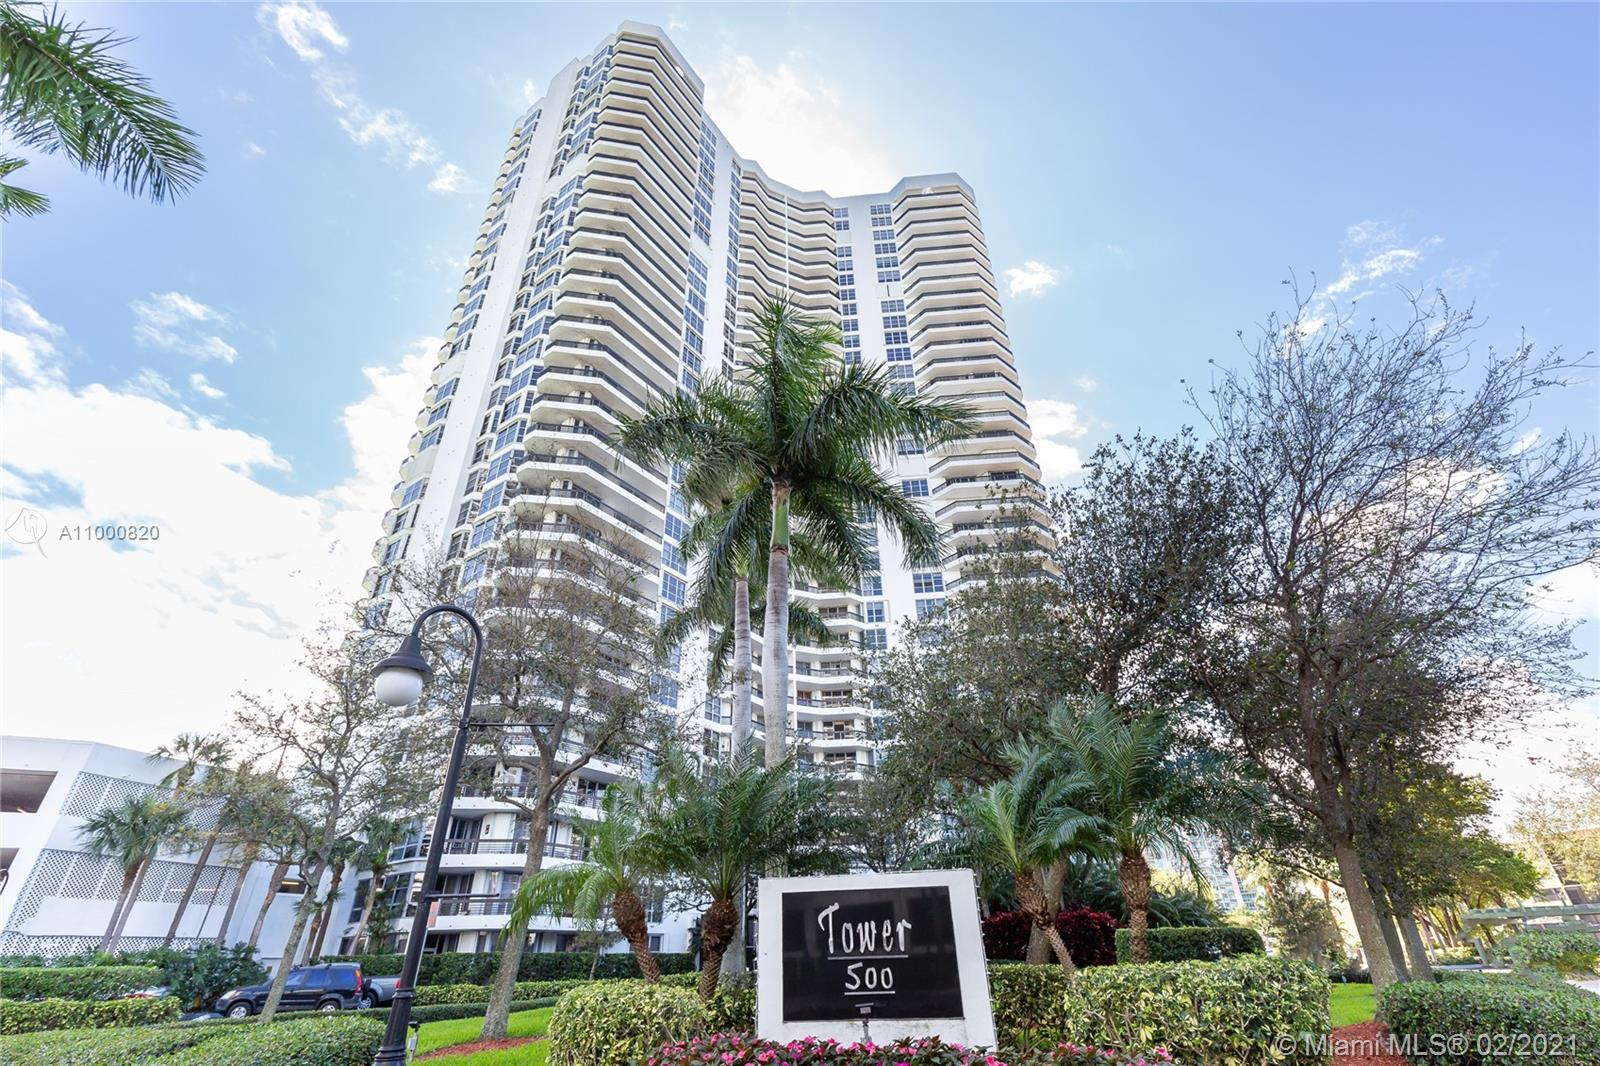 Mystic Pointe Tower 500 #3204 - 3530 Mystic Pointe Dr #3204, Aventura, FL 33180